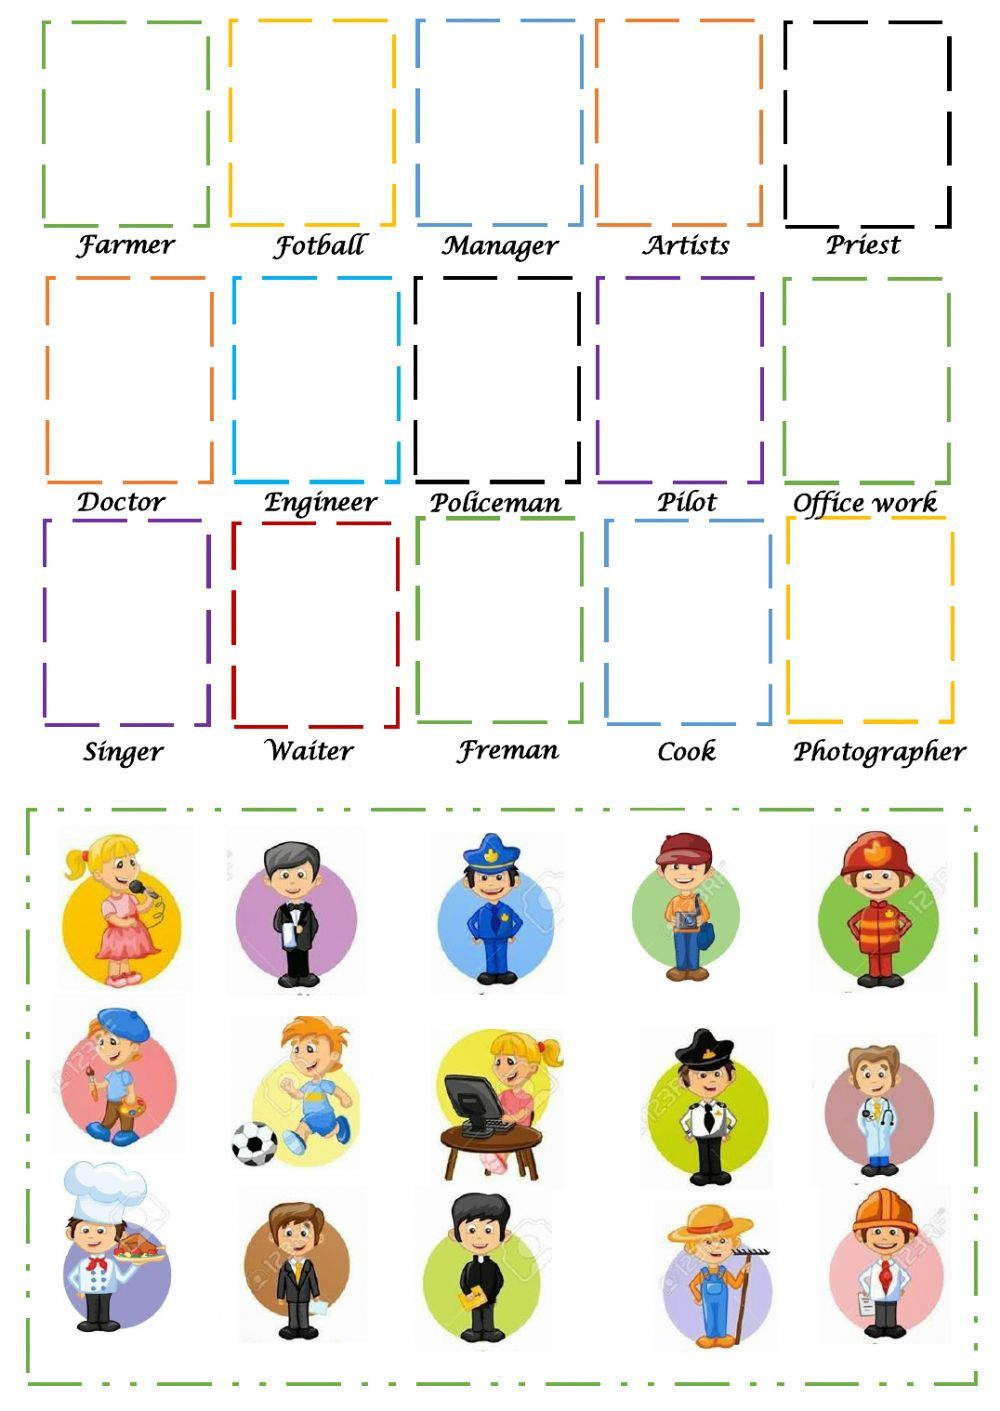 Jobs And Occupations Interactive And Downloadable Worksheet You Can Do The Exer Kids Worksheets Preschool English Worksheets For Kids English Lessons For Kids [ 1411 x 1000 Pixel ]